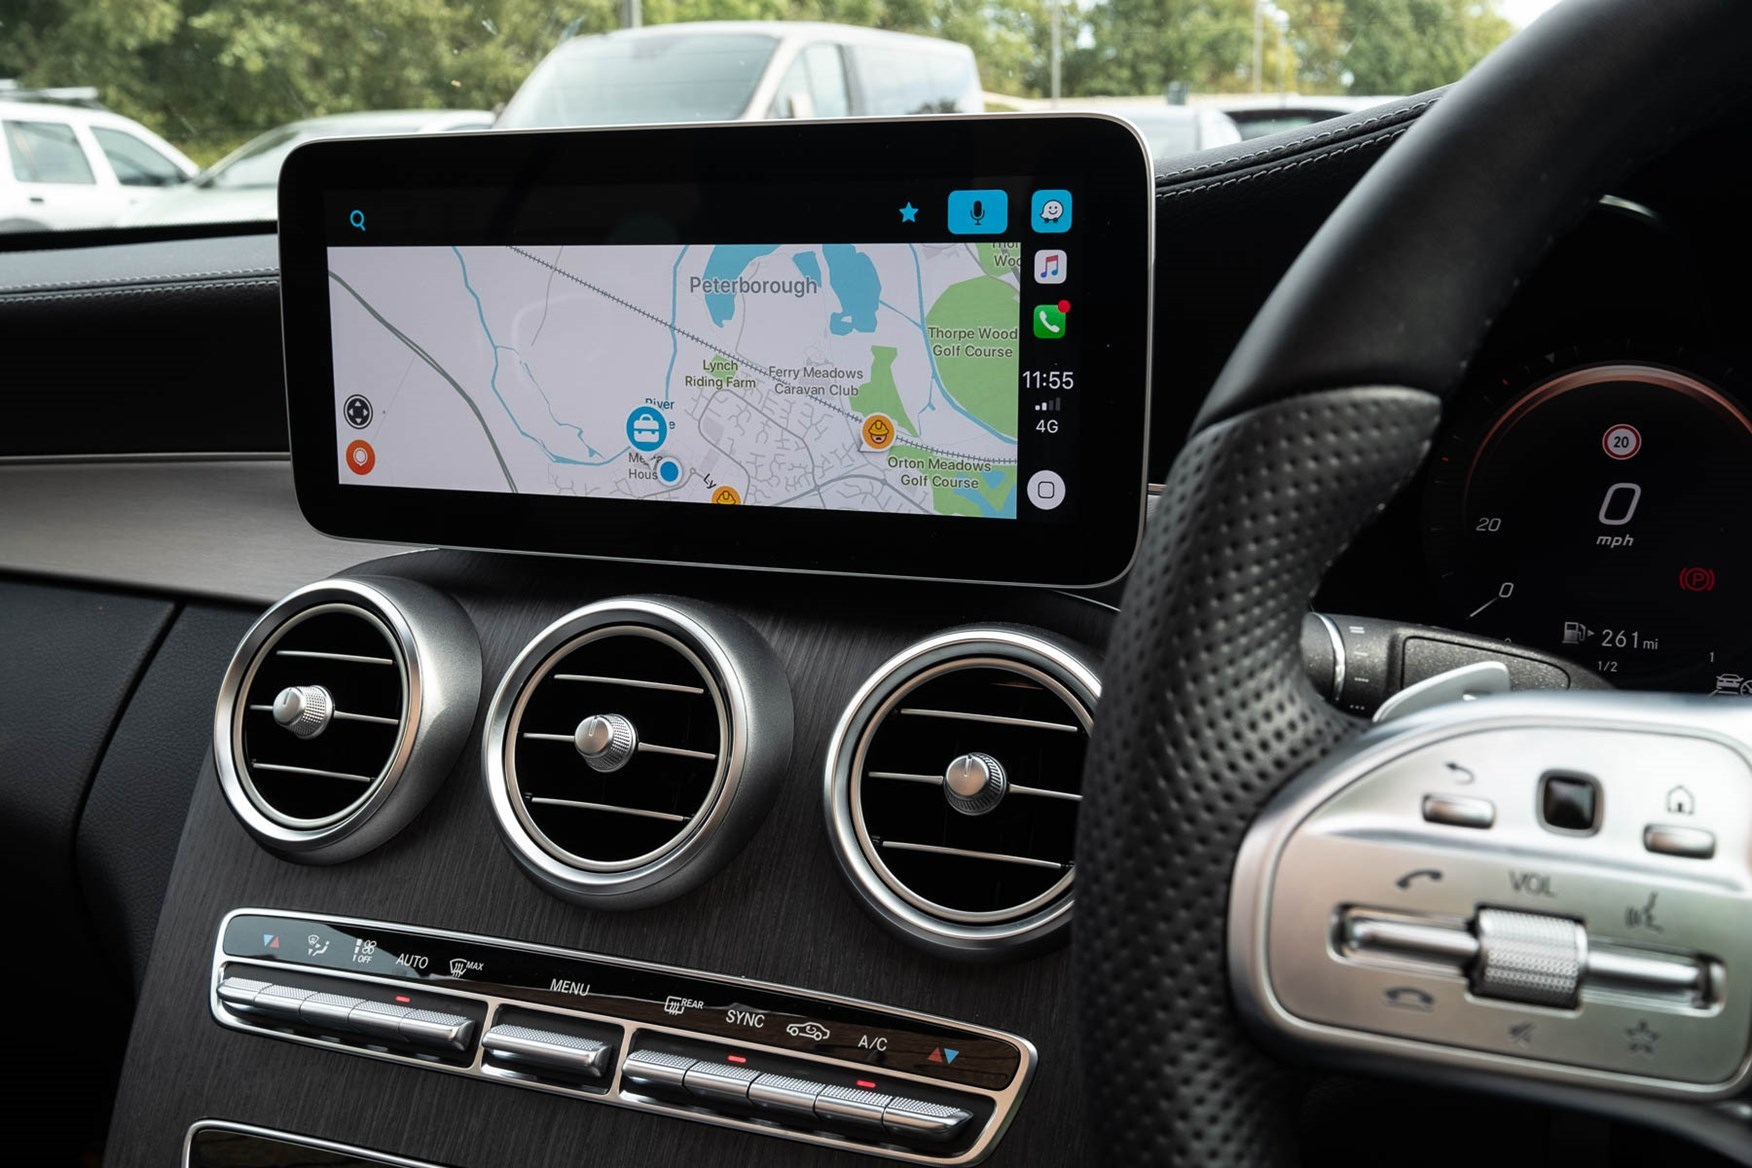 The best sat nav apps 2019 | Parkers